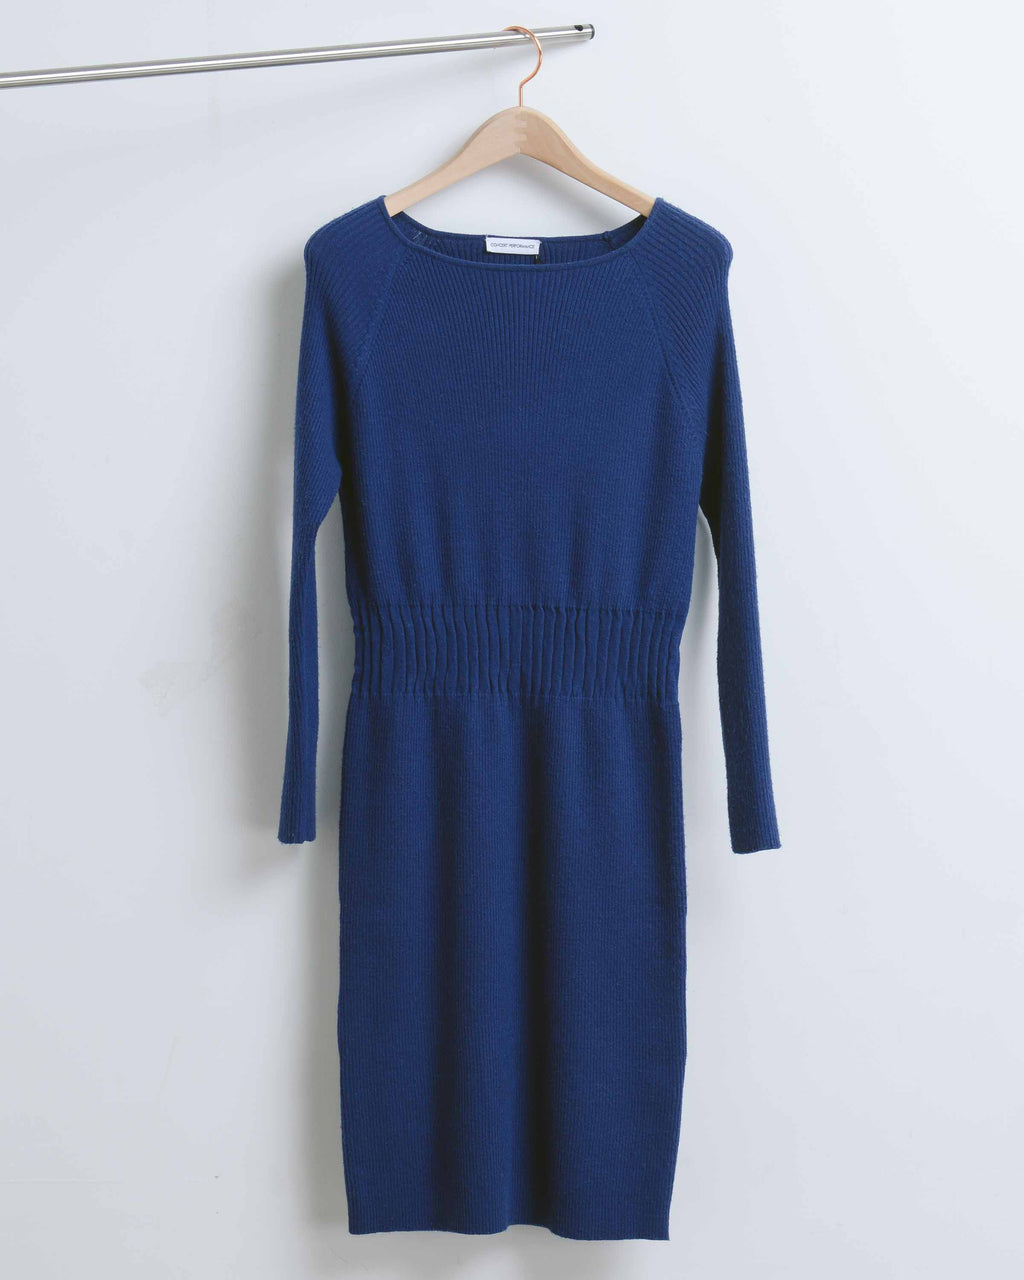 Navy Rib Knit Dress